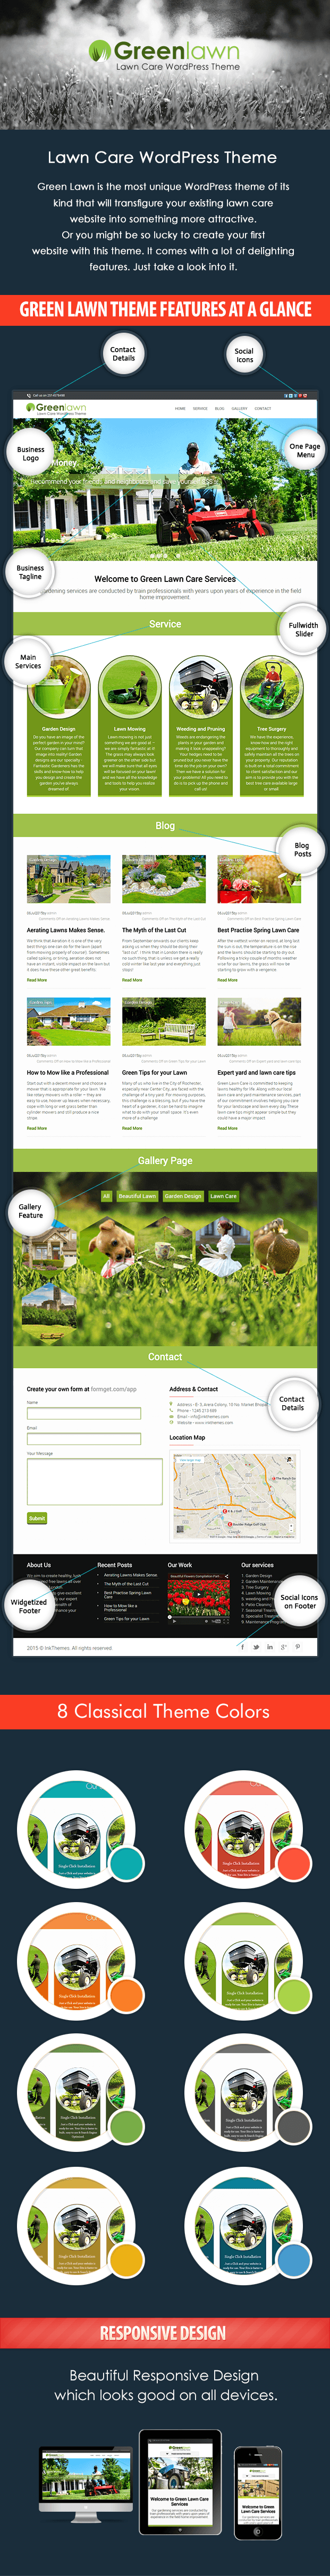 lawn and garden maintenece wordpress theme - all features